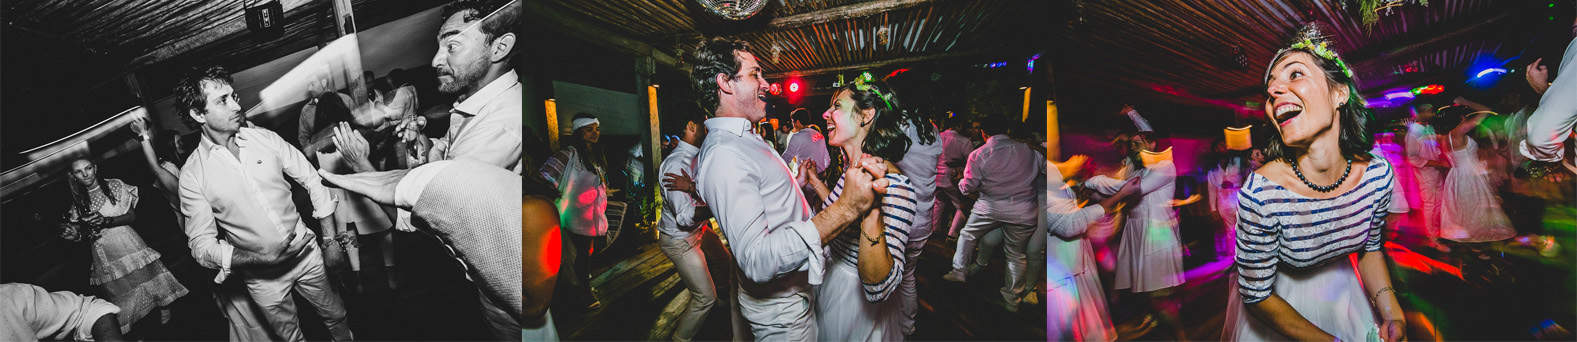 bride and groom dancing in a alternative wedding